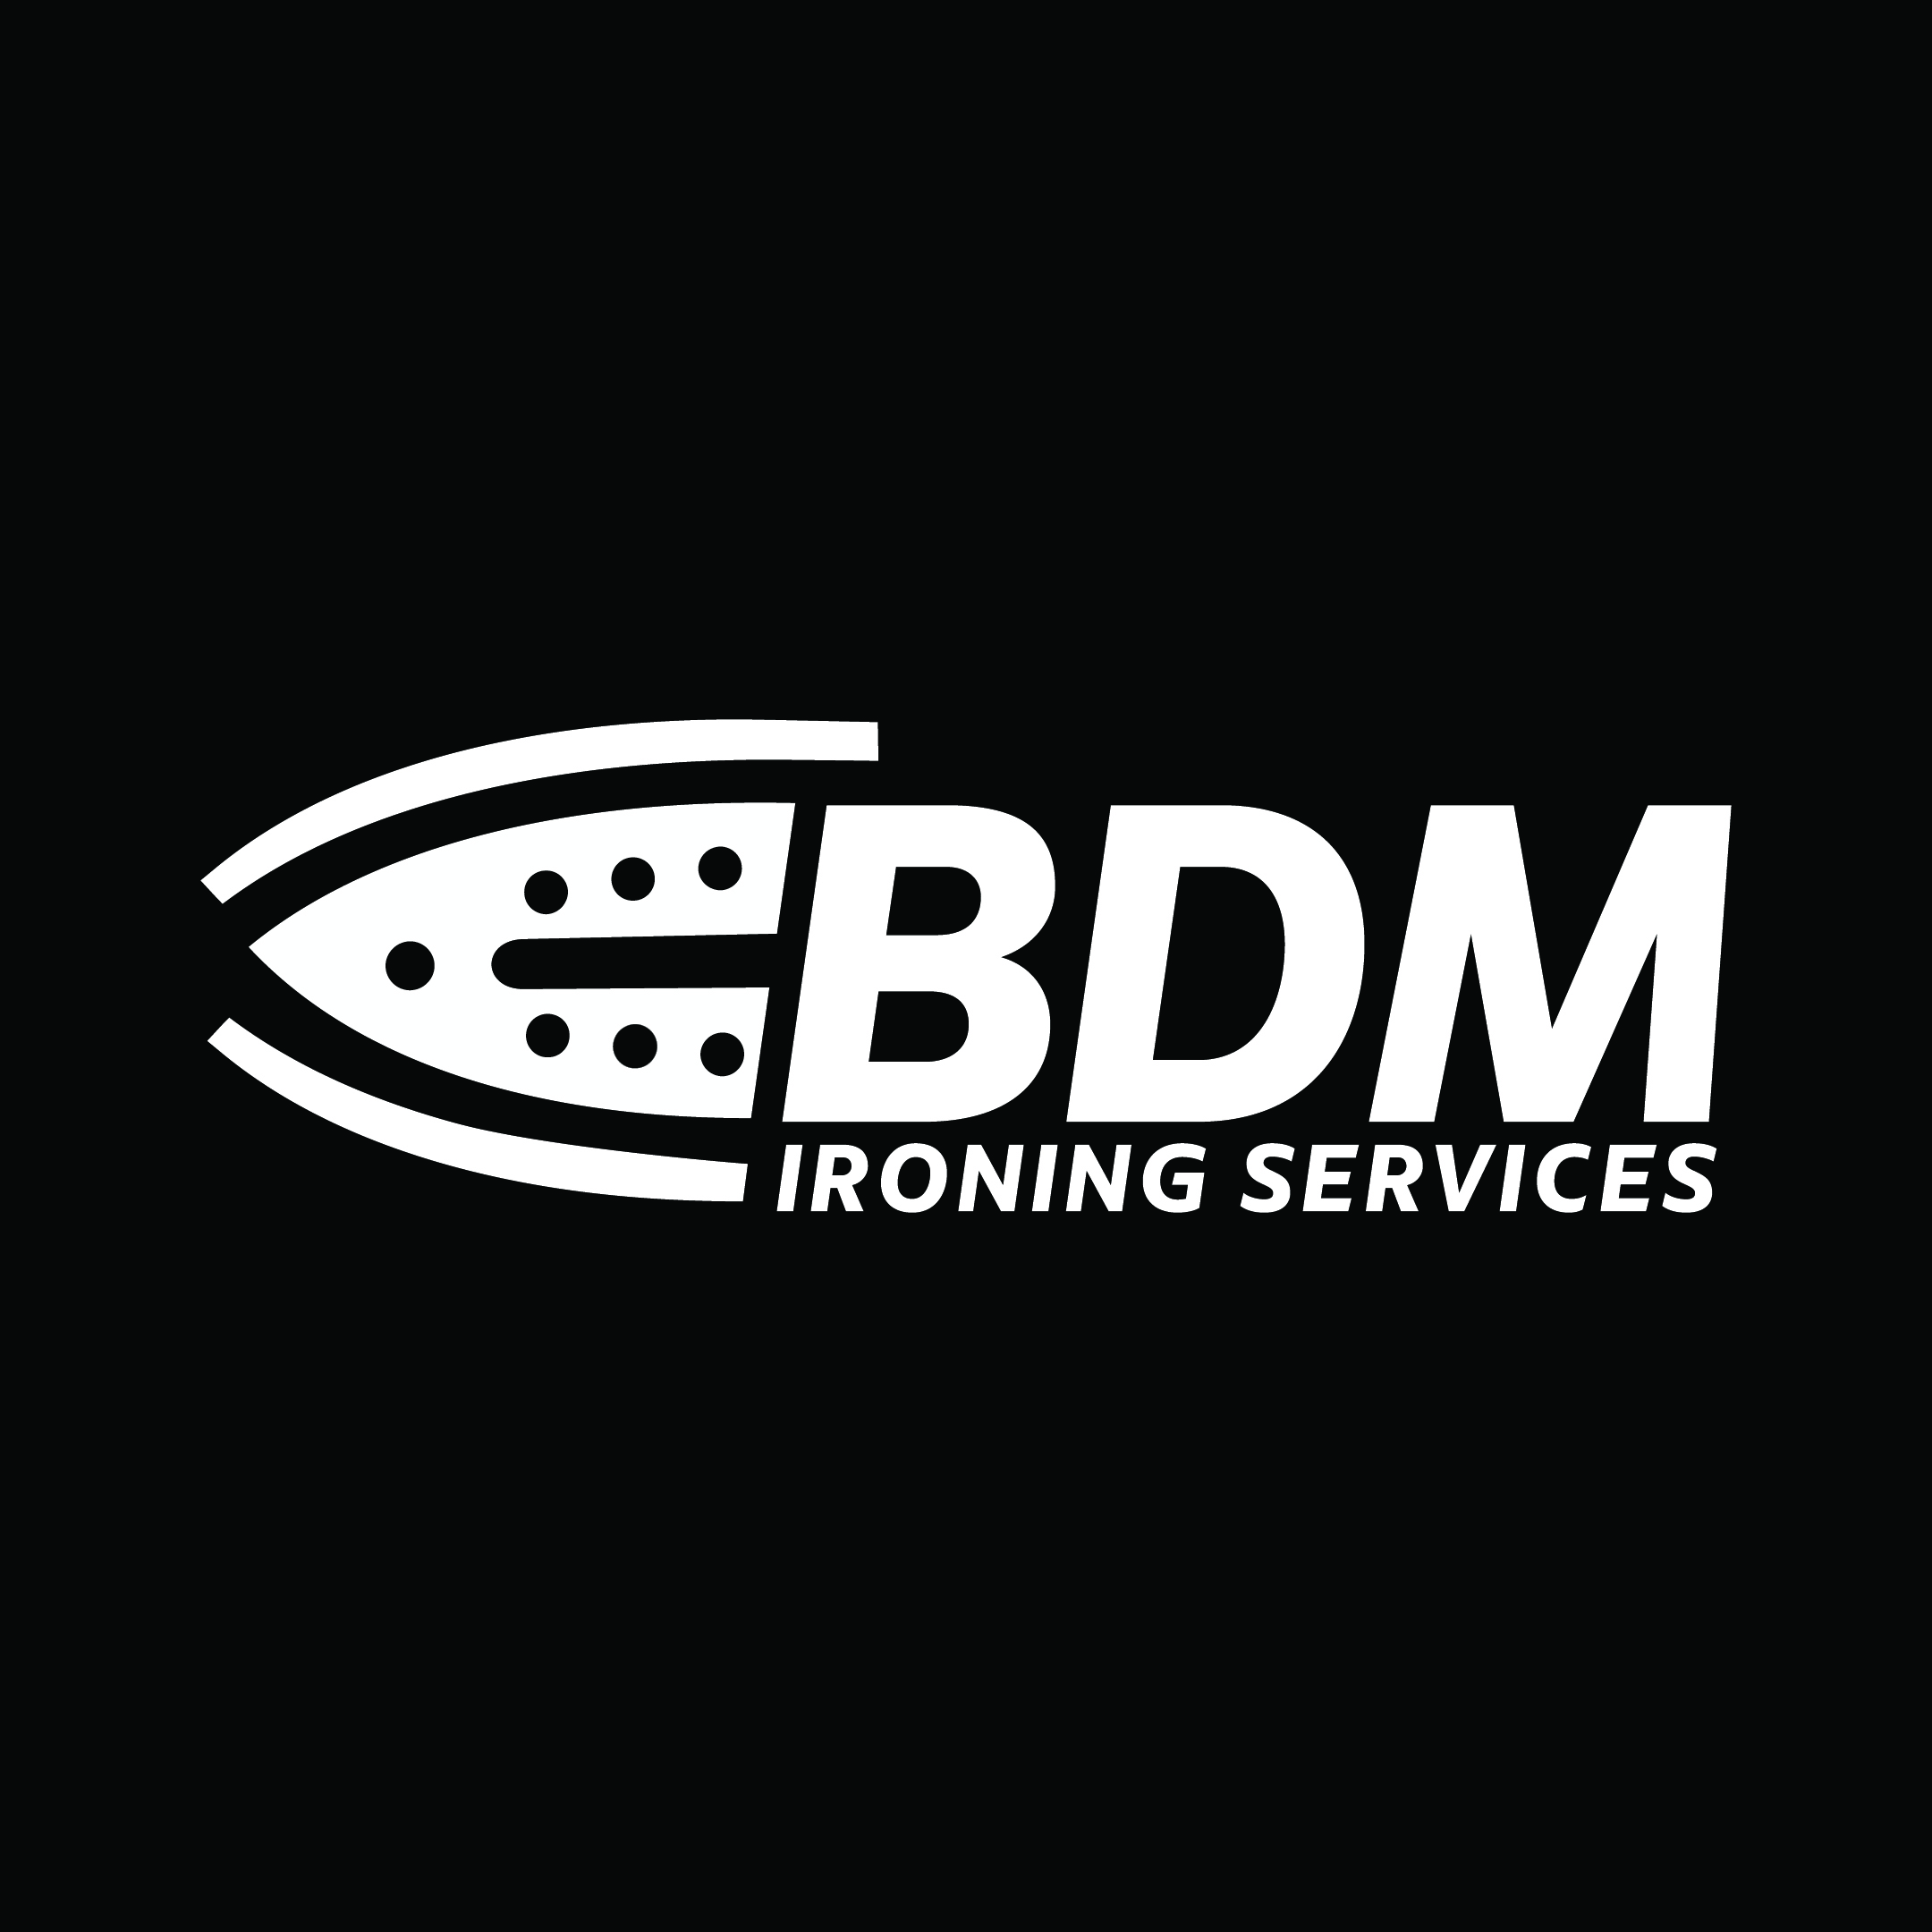 BDM Ironing Services